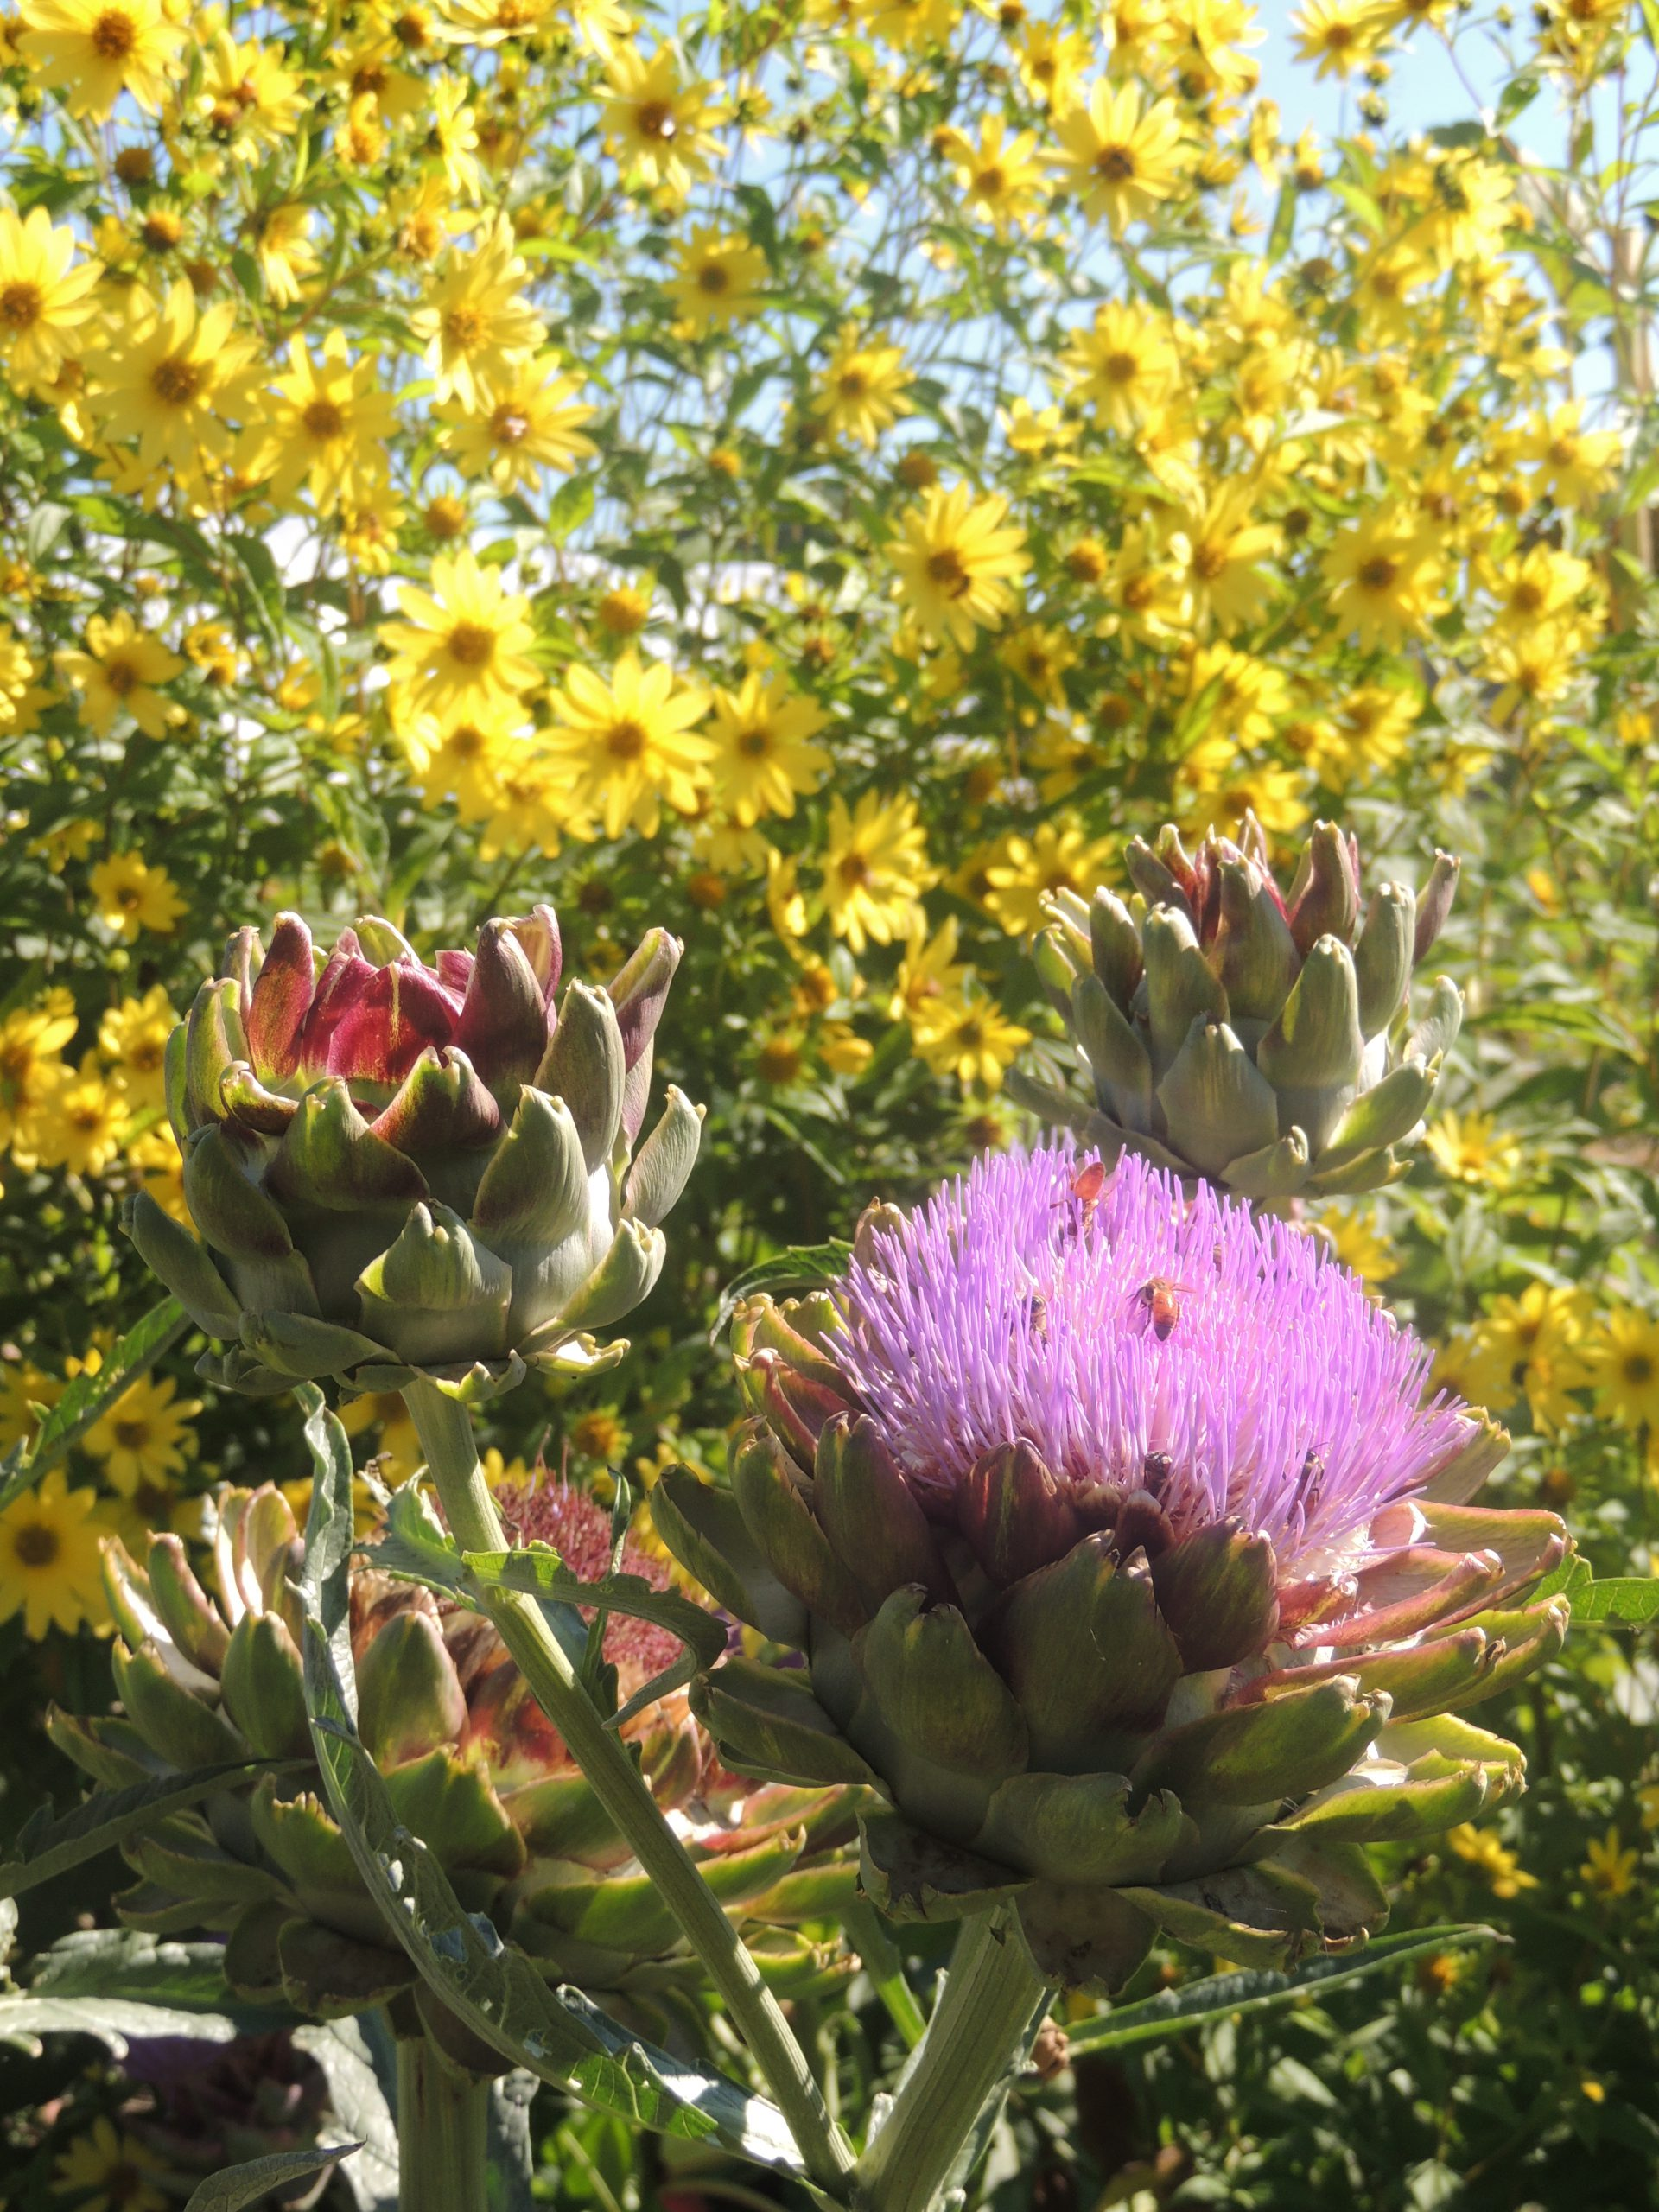 A flowering artichoke at Oak Creek Center for Urban Horticulture © H. Keirstead